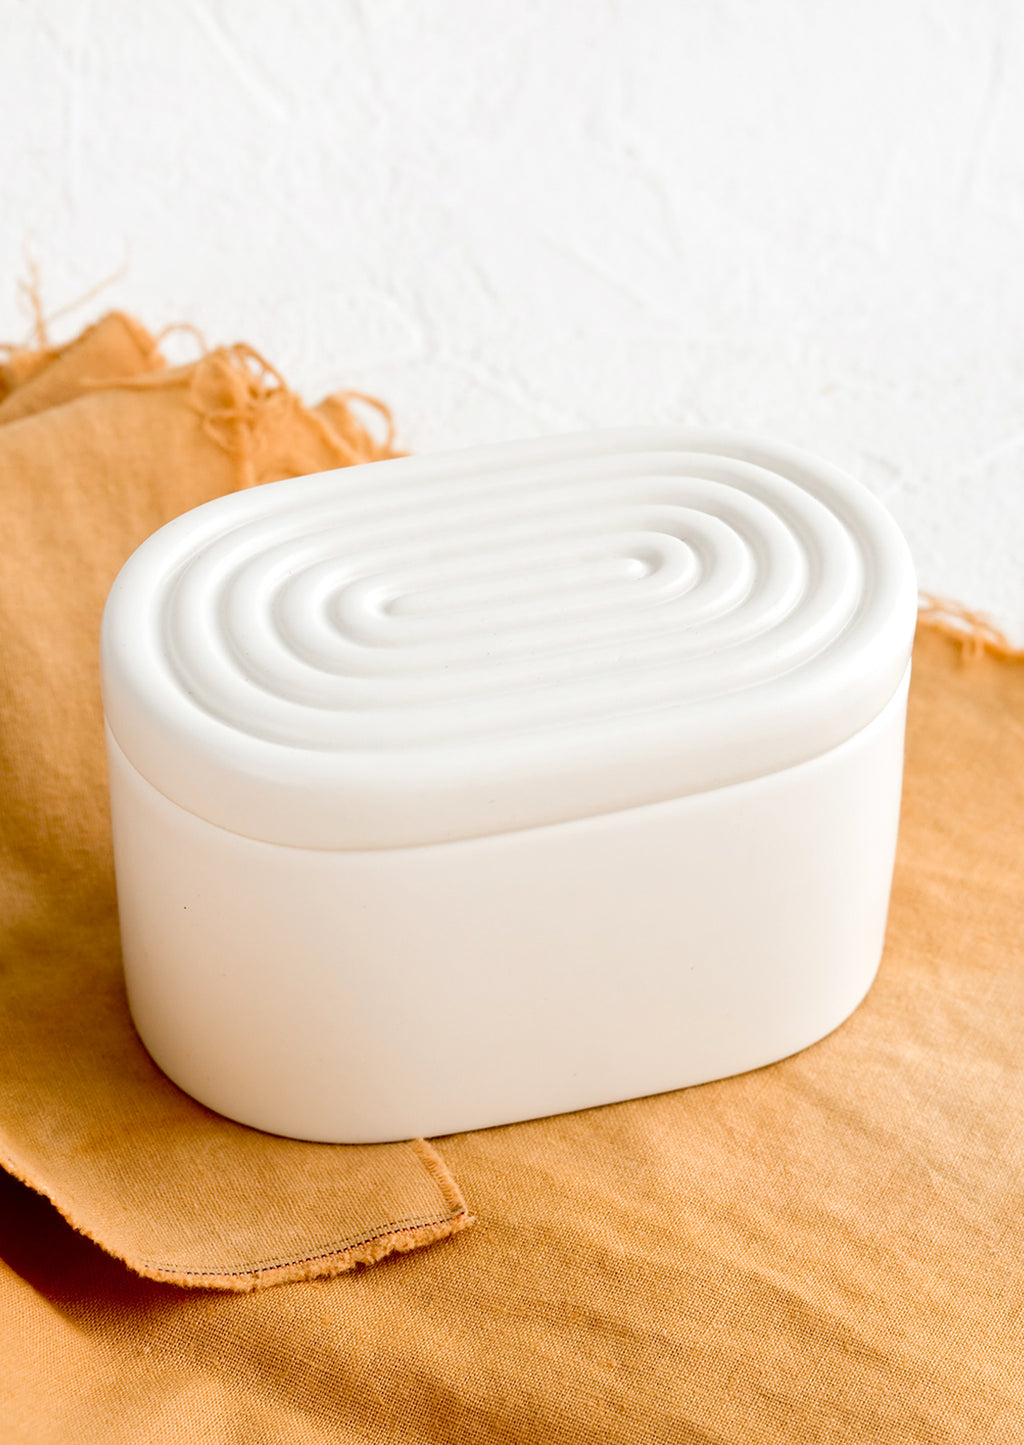 2: An oval-shaped white ceramic storage box with maze-patterned lid.